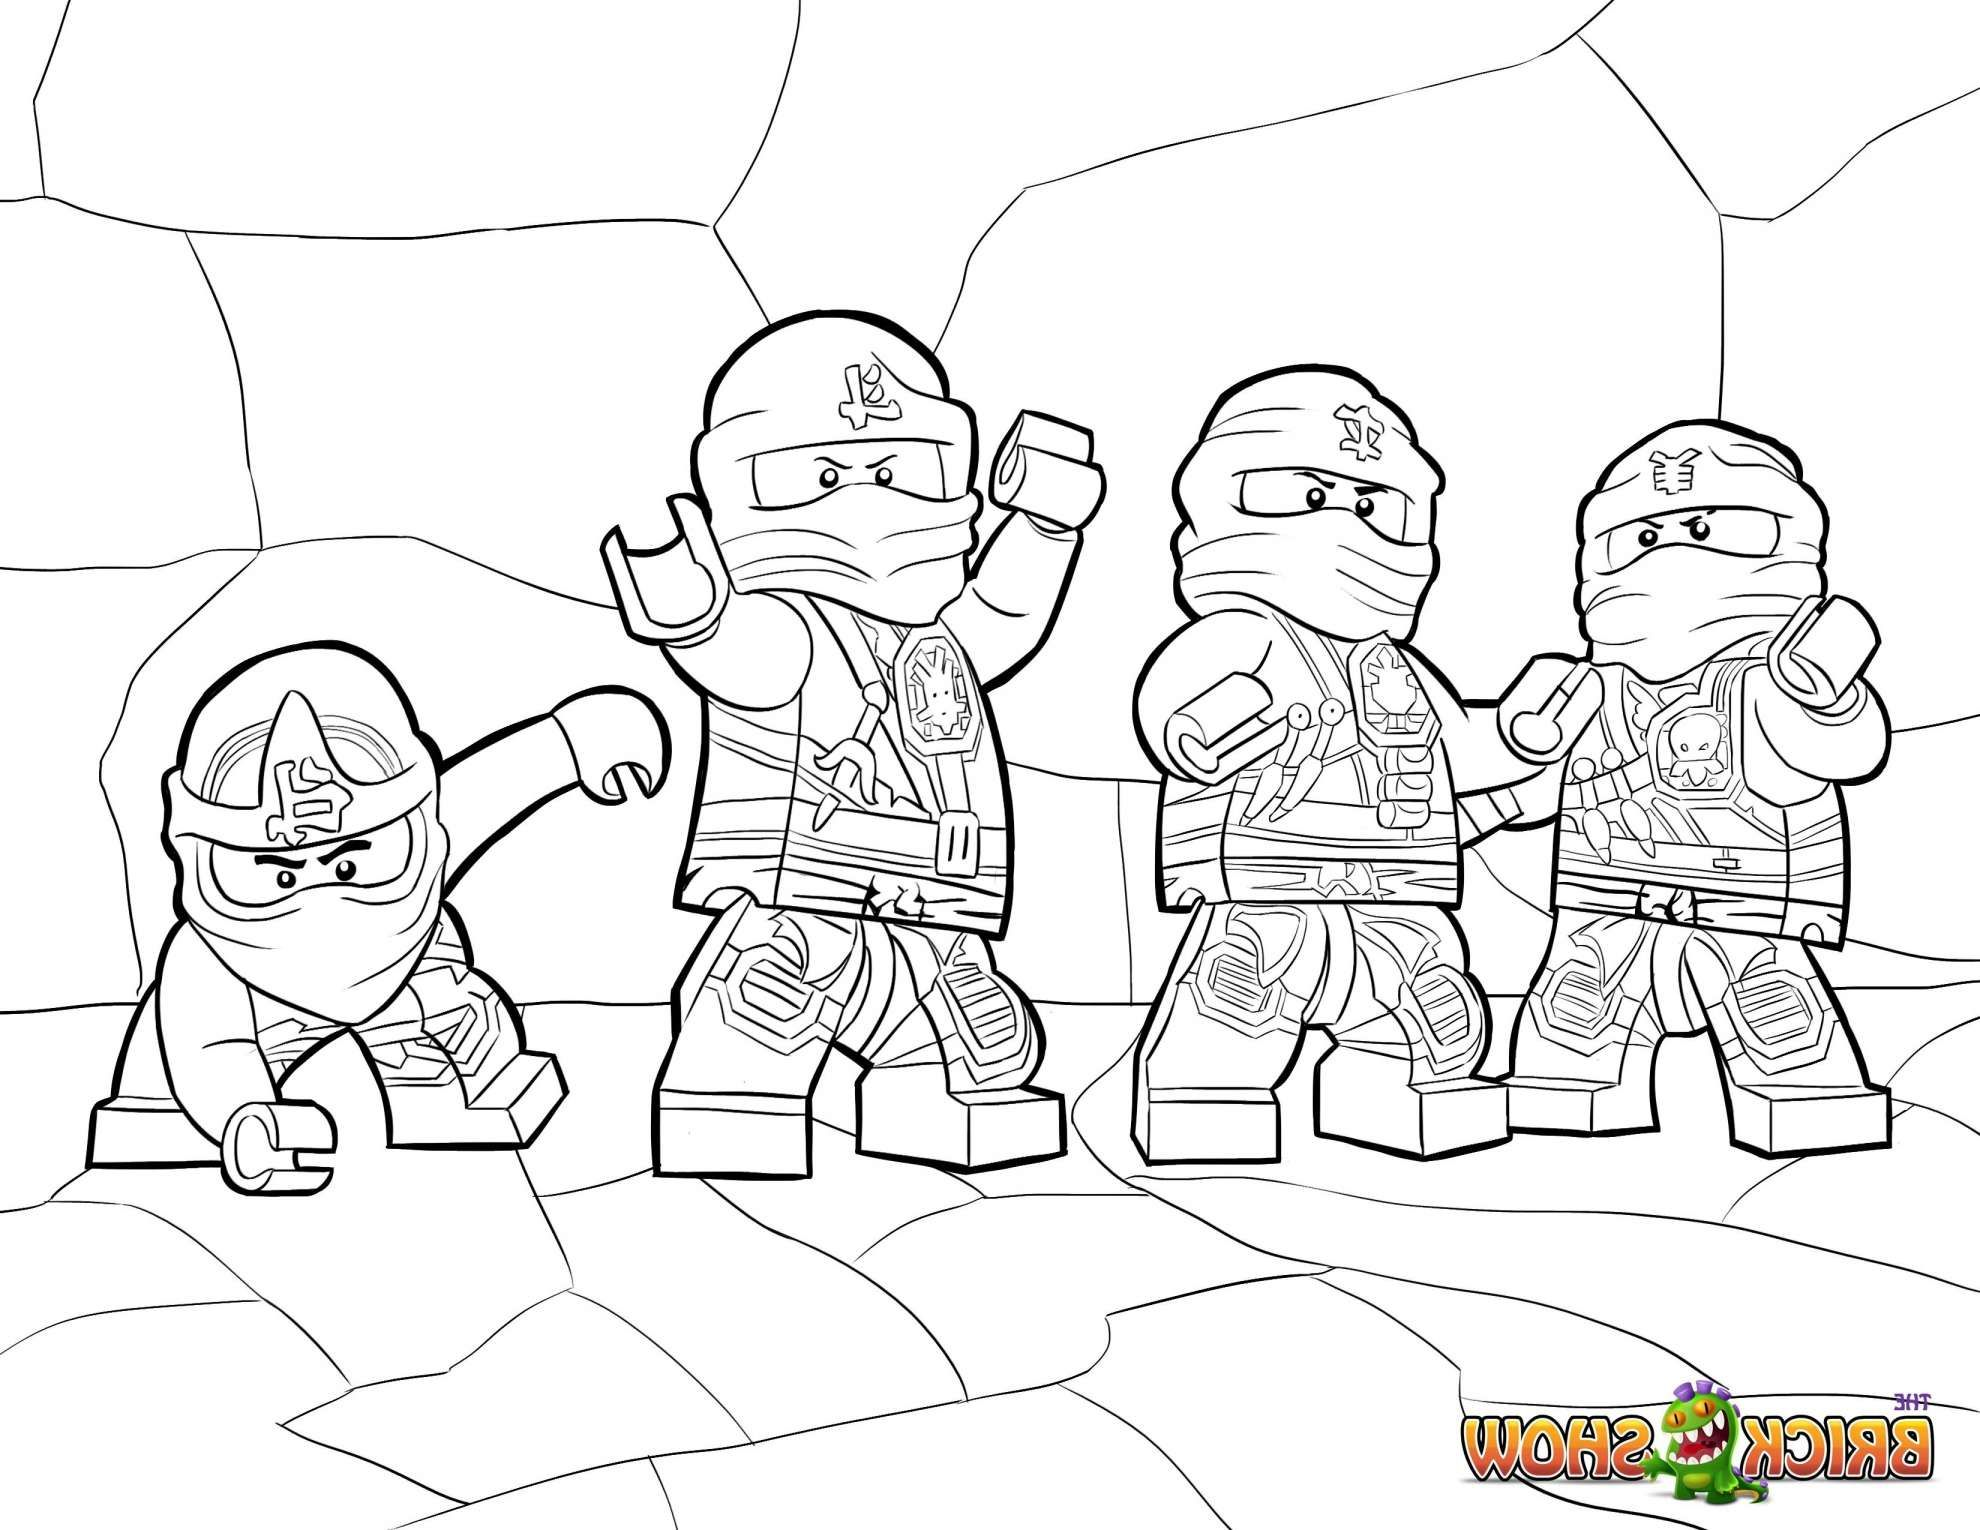 16 Lego Dimensions Coloring Pages Ninjago Coloring Pages Super Coloring Pages Lego Coloring Pages